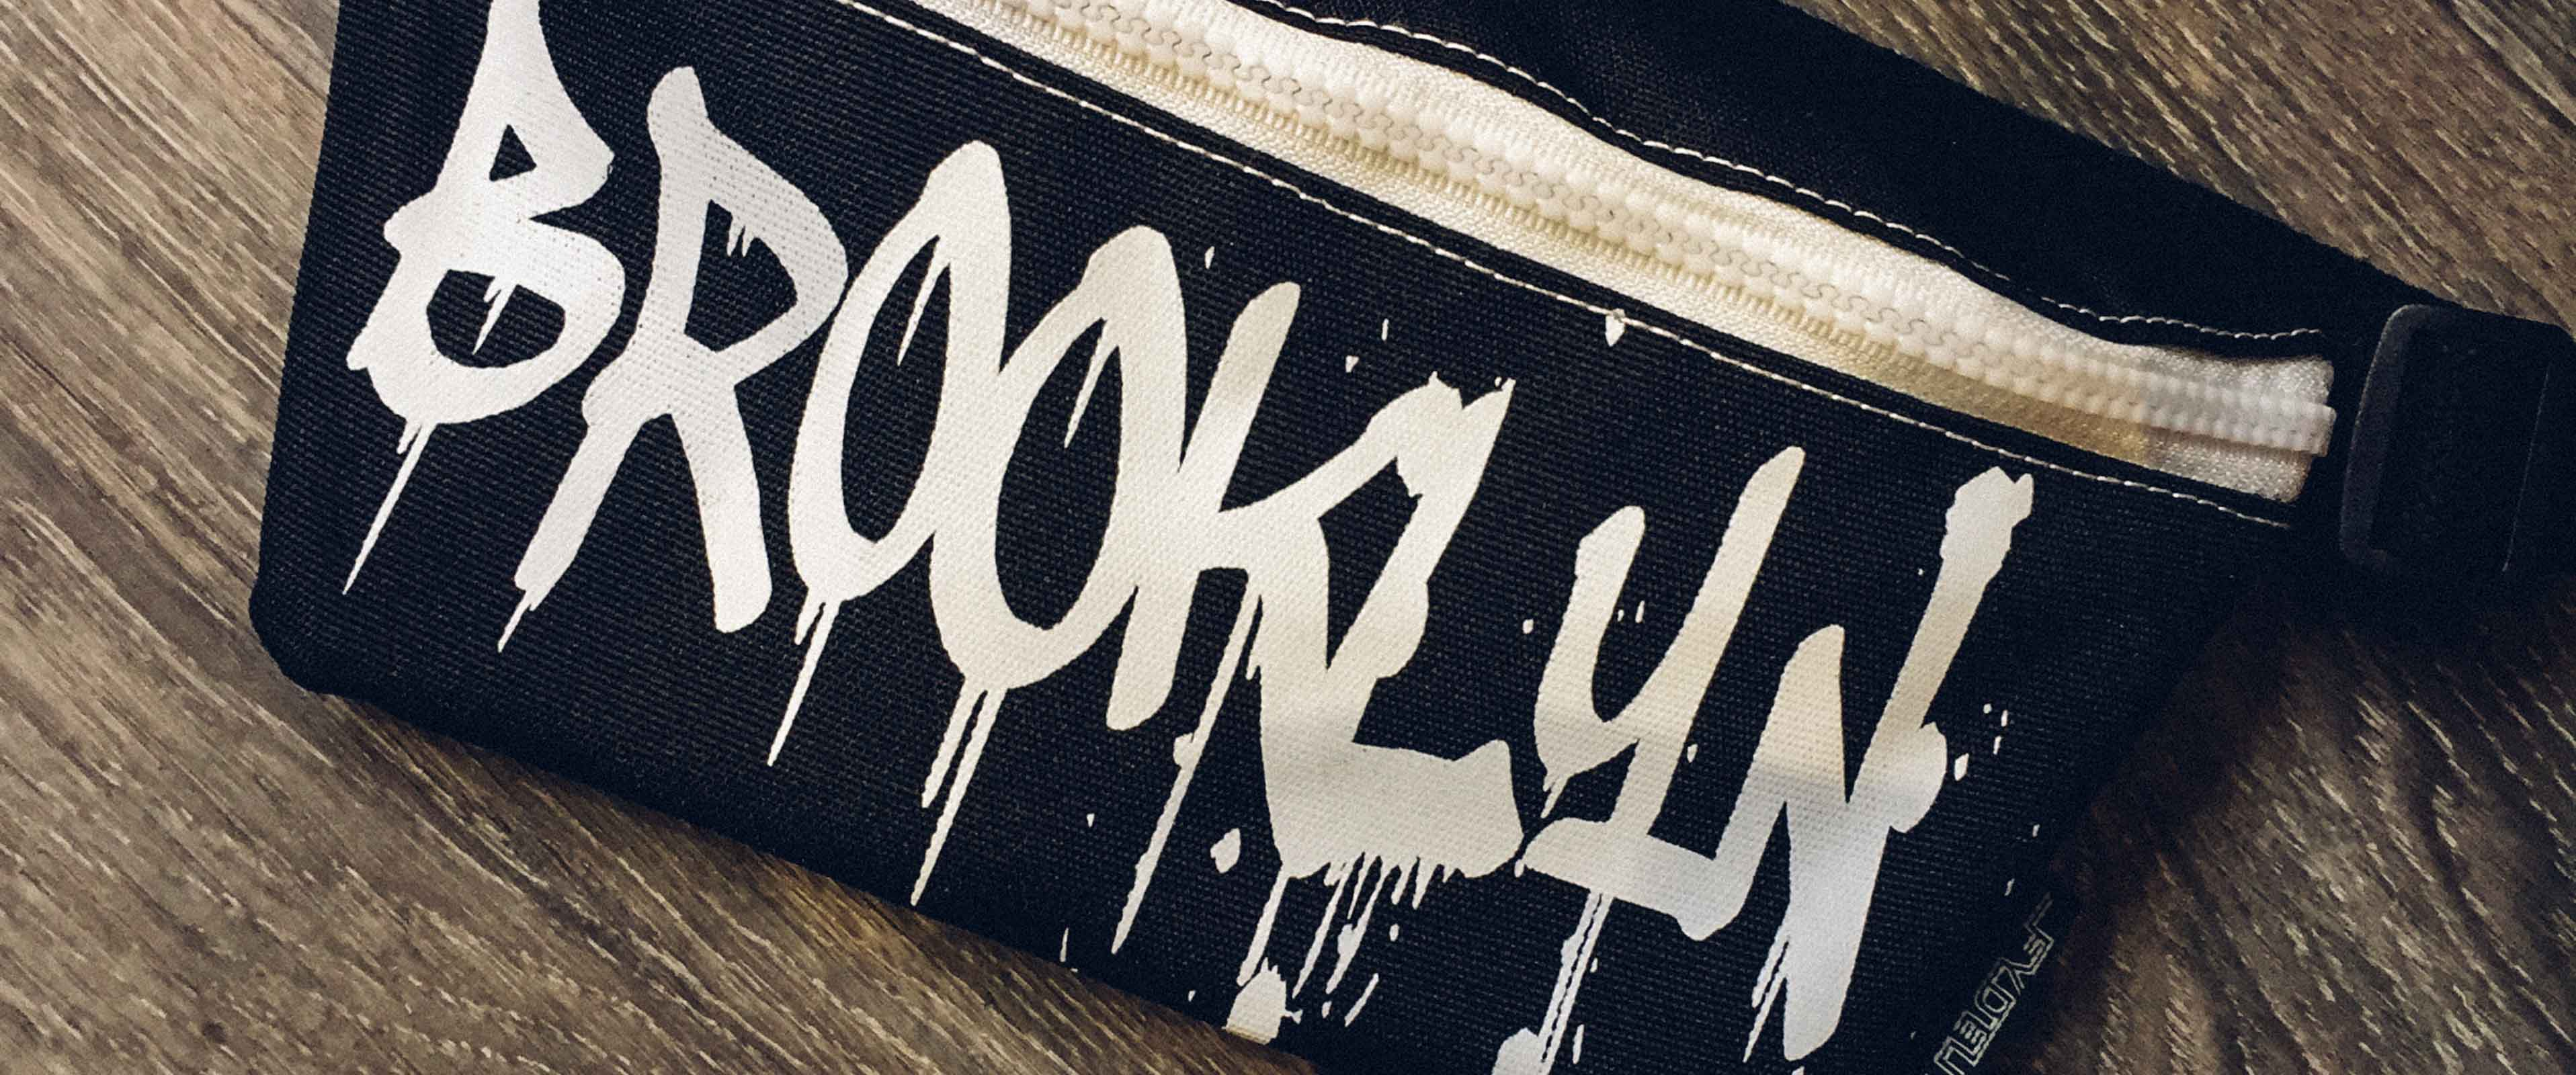 FYDELITY HIPSTER BROOKLYN FANNY PACK